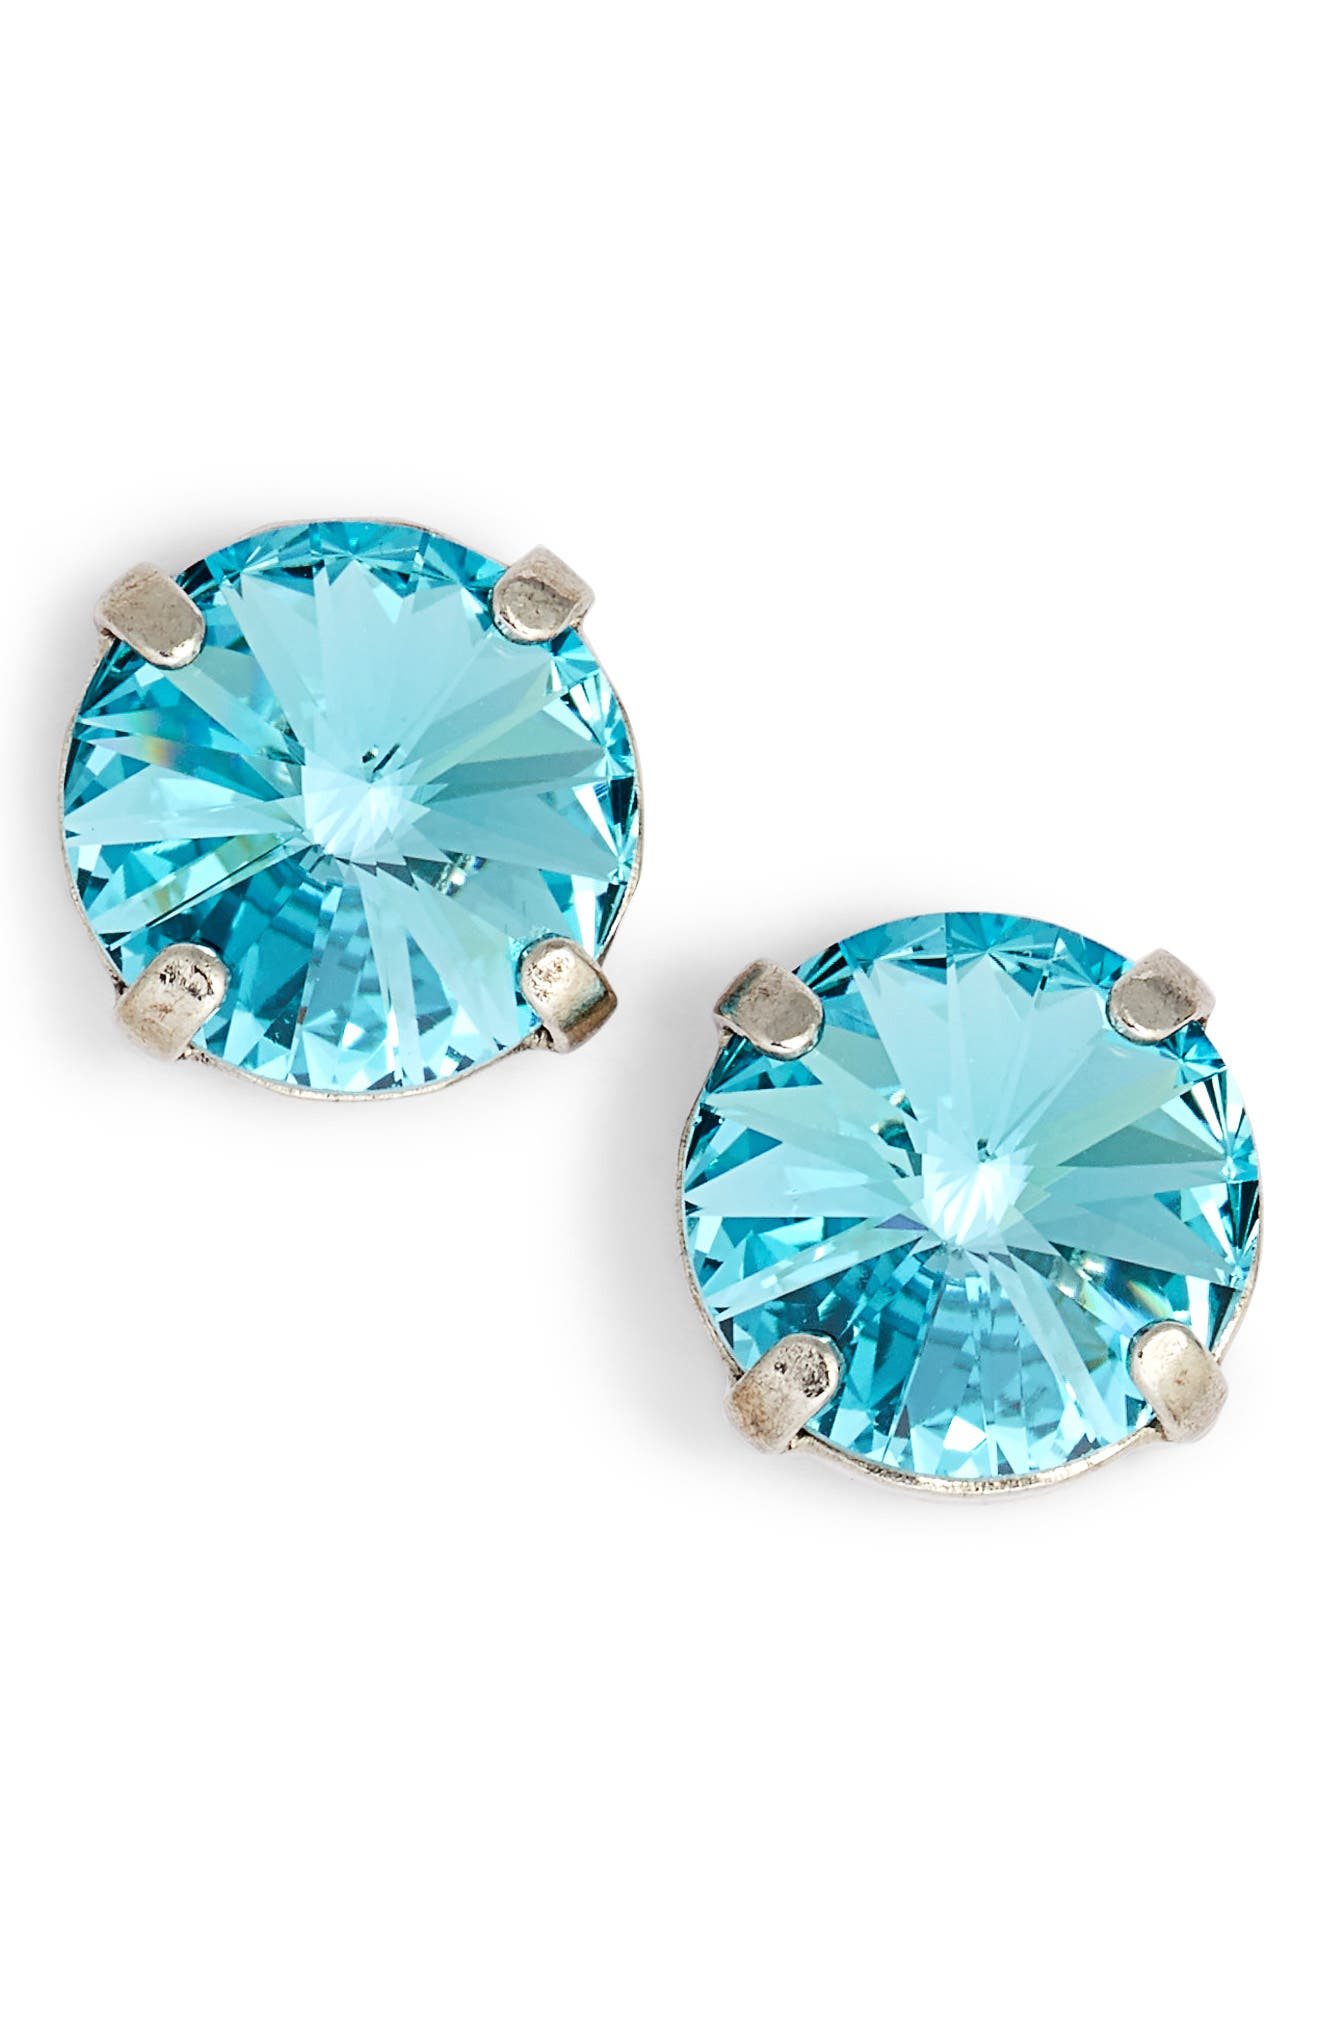 Radiant Rivoli Earrings,                             Main thumbnail 1, color,                             400